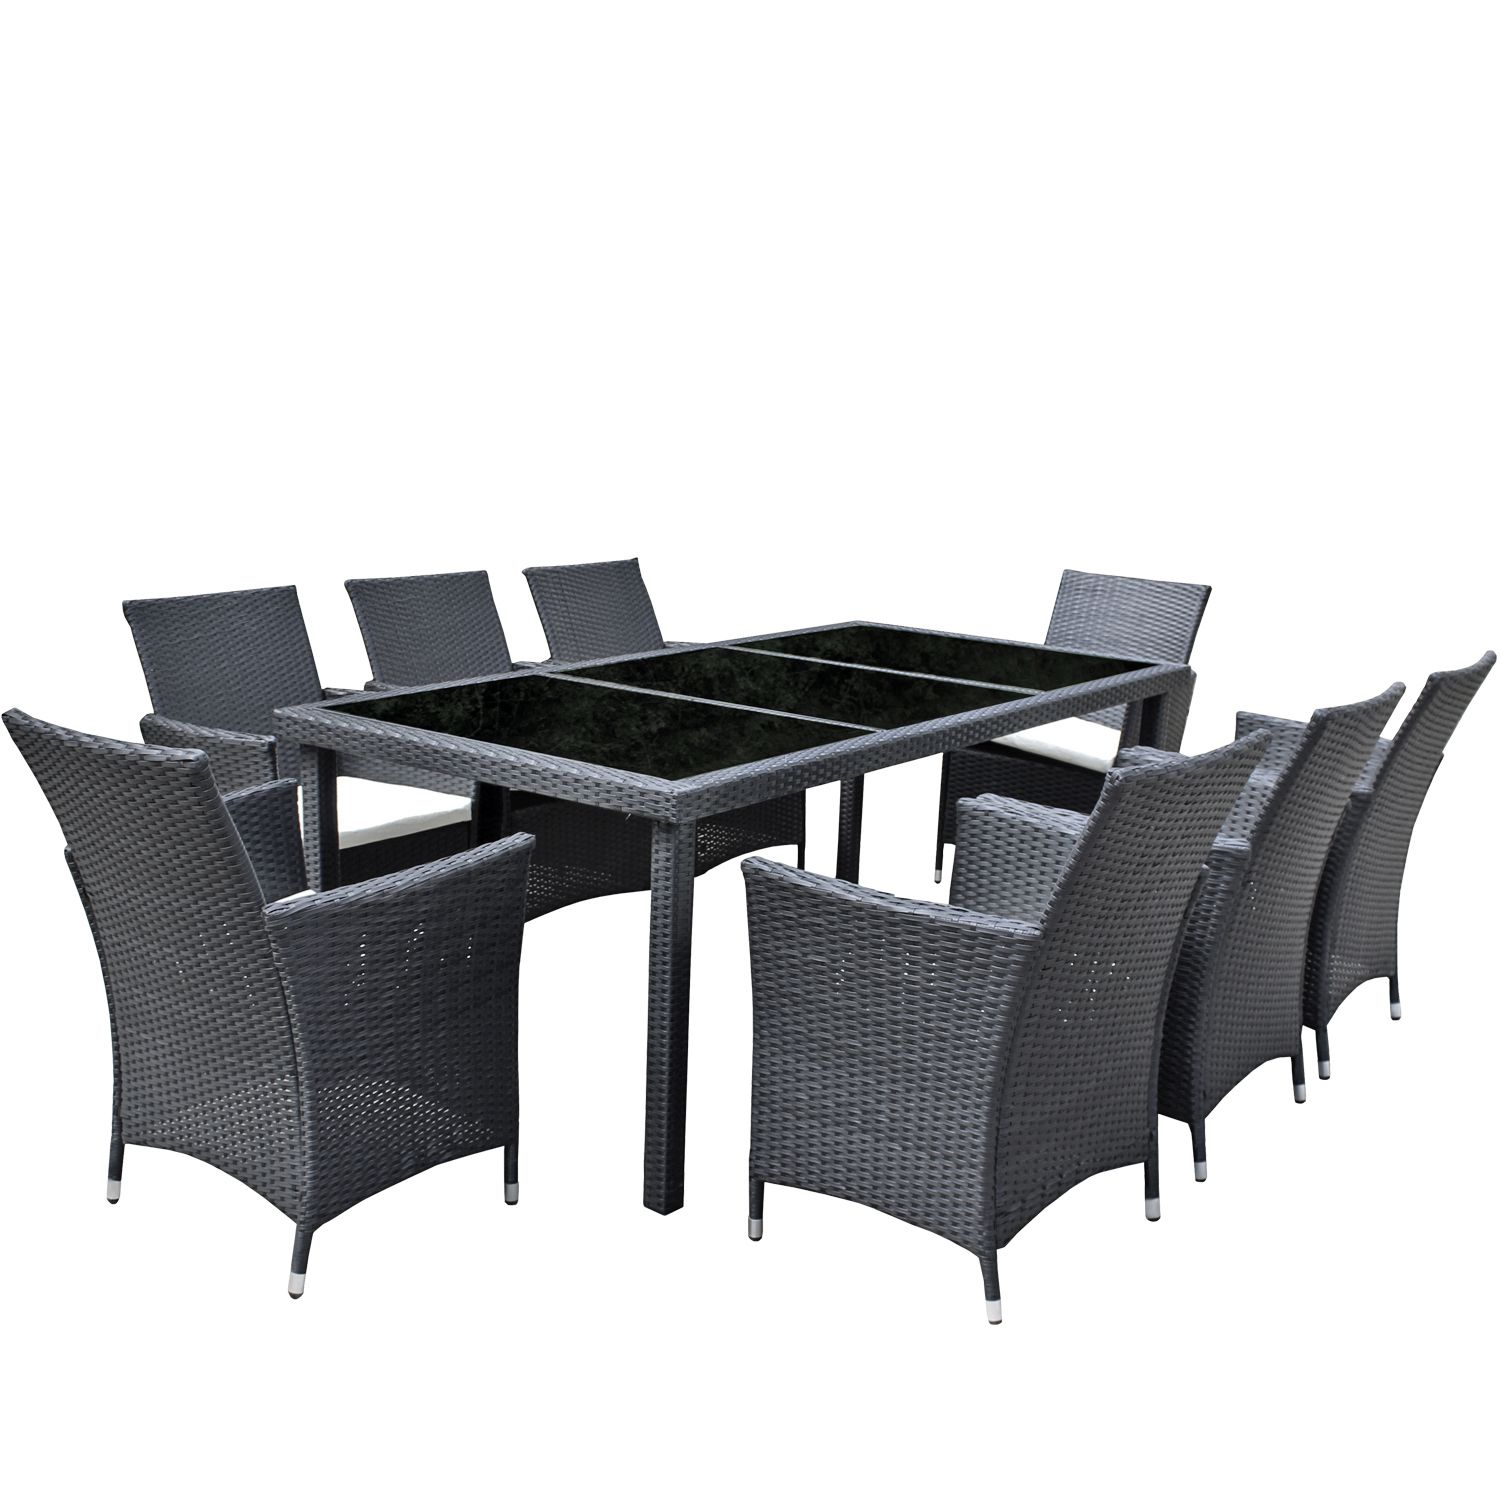 gartenm bel set 8er sitzgruppe dining exclusive polyrattan schwarz asviva ebay. Black Bedroom Furniture Sets. Home Design Ideas